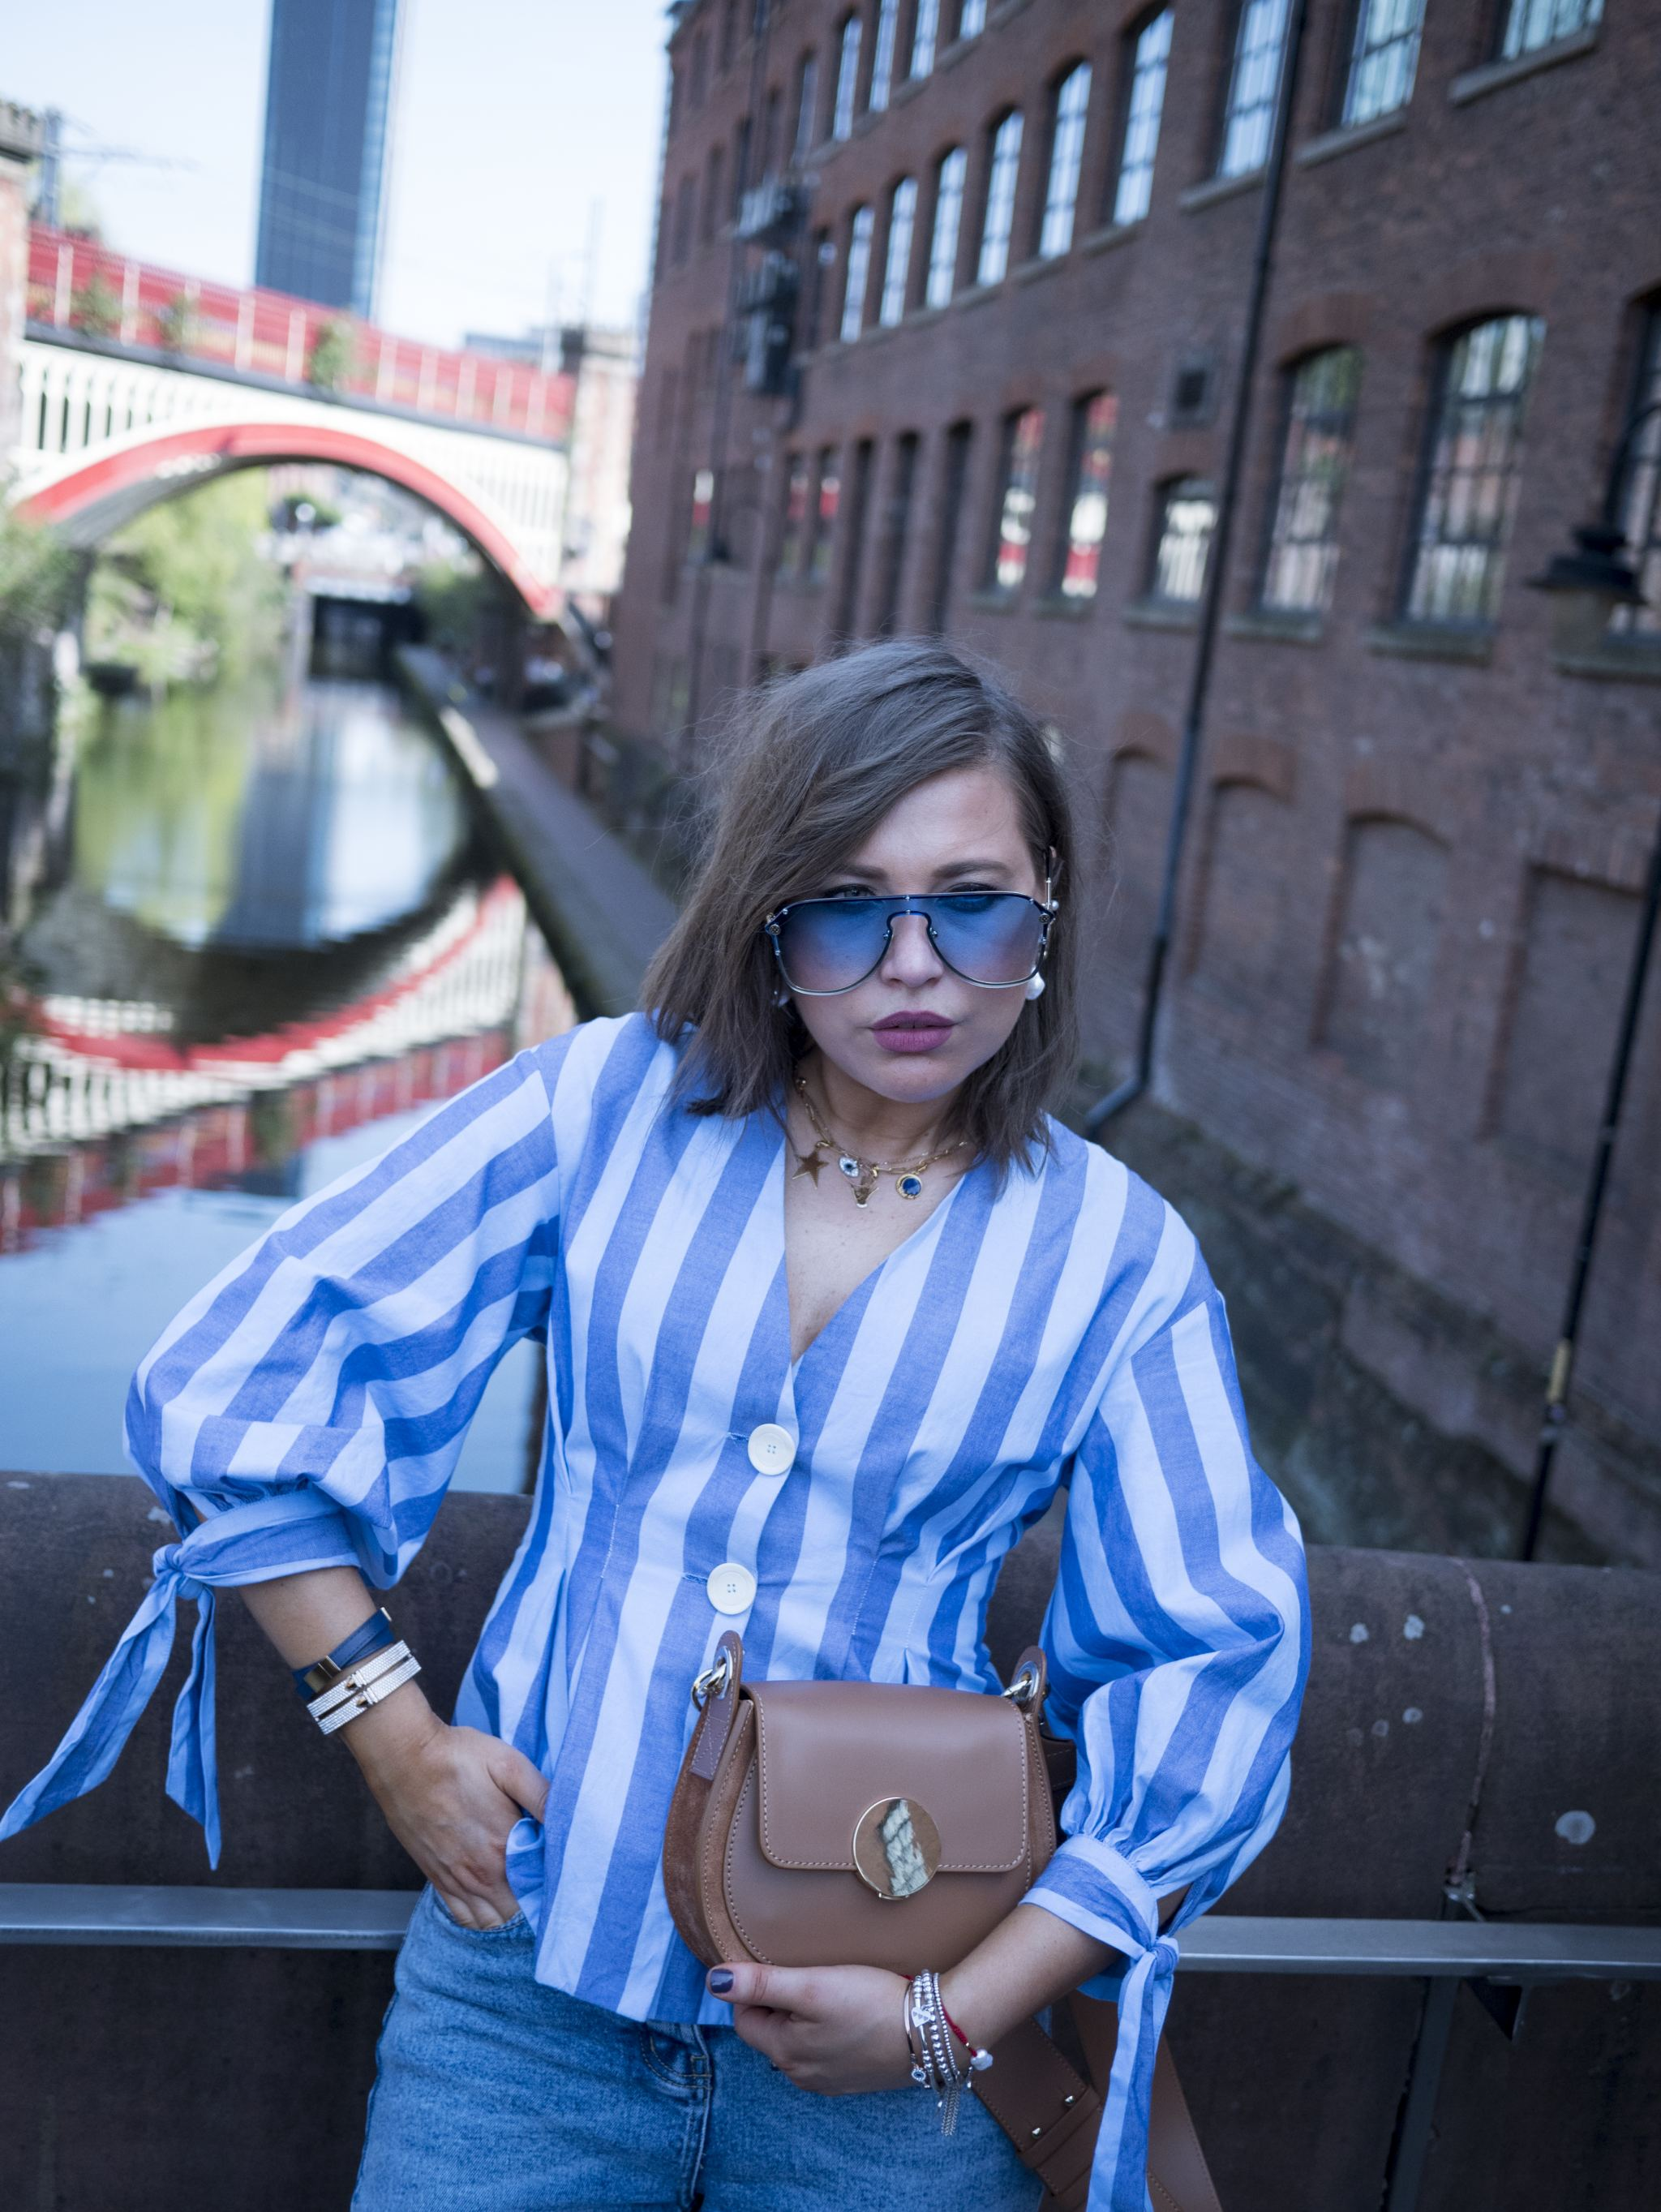 manchester fashion blogger, manchester blogger, manchester influencer, manchester style, ukblogger